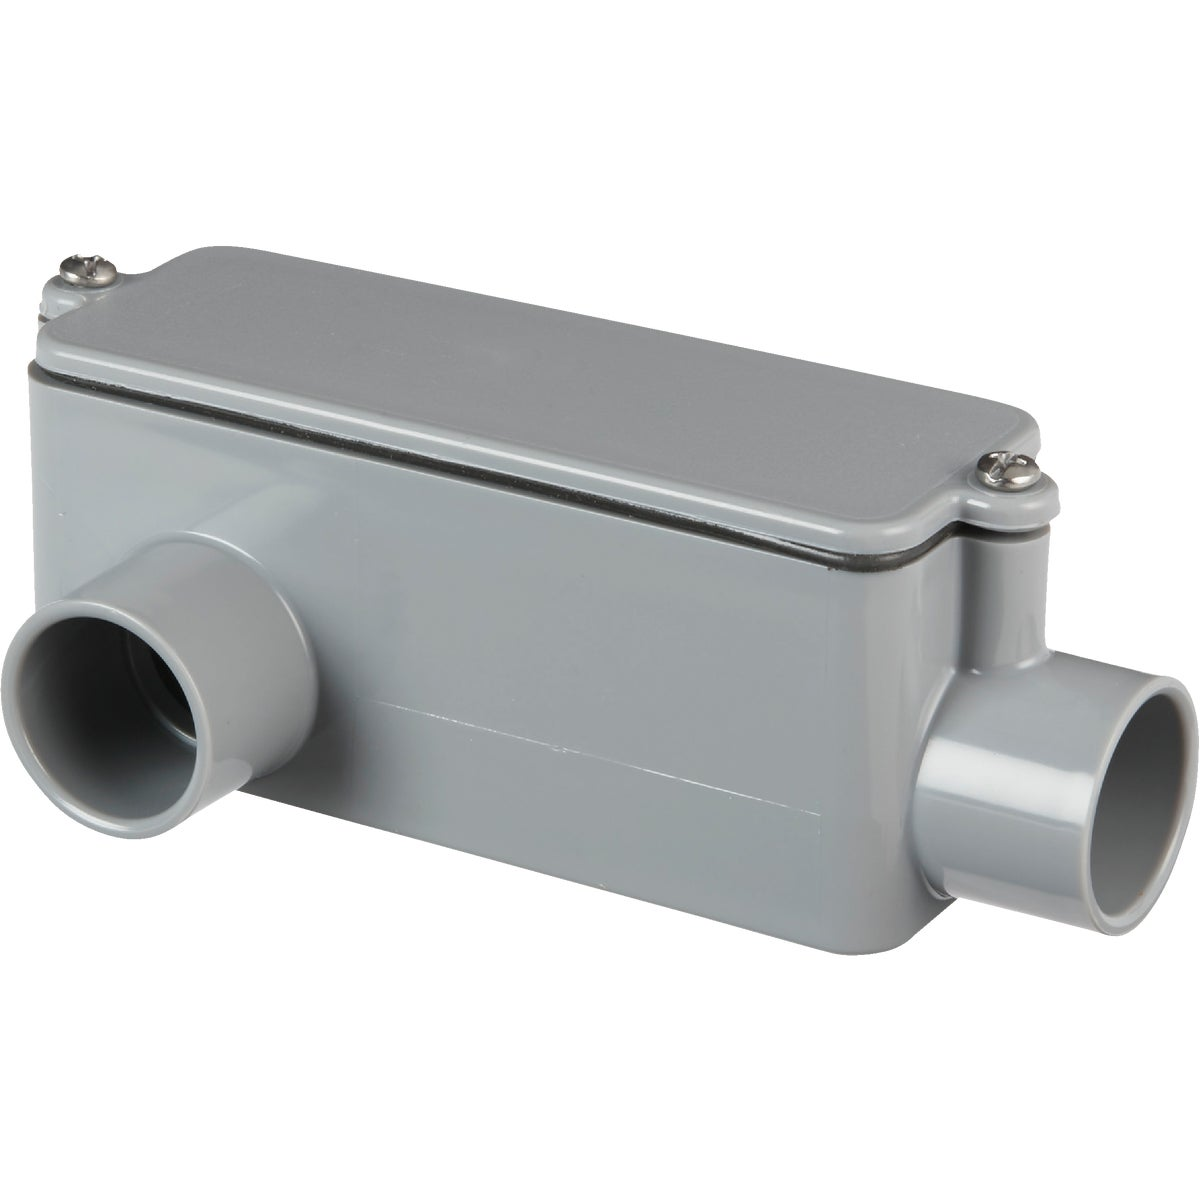 "3/4"" LR ACCESS FITTING - E985ECTN by Thomas & Betts"